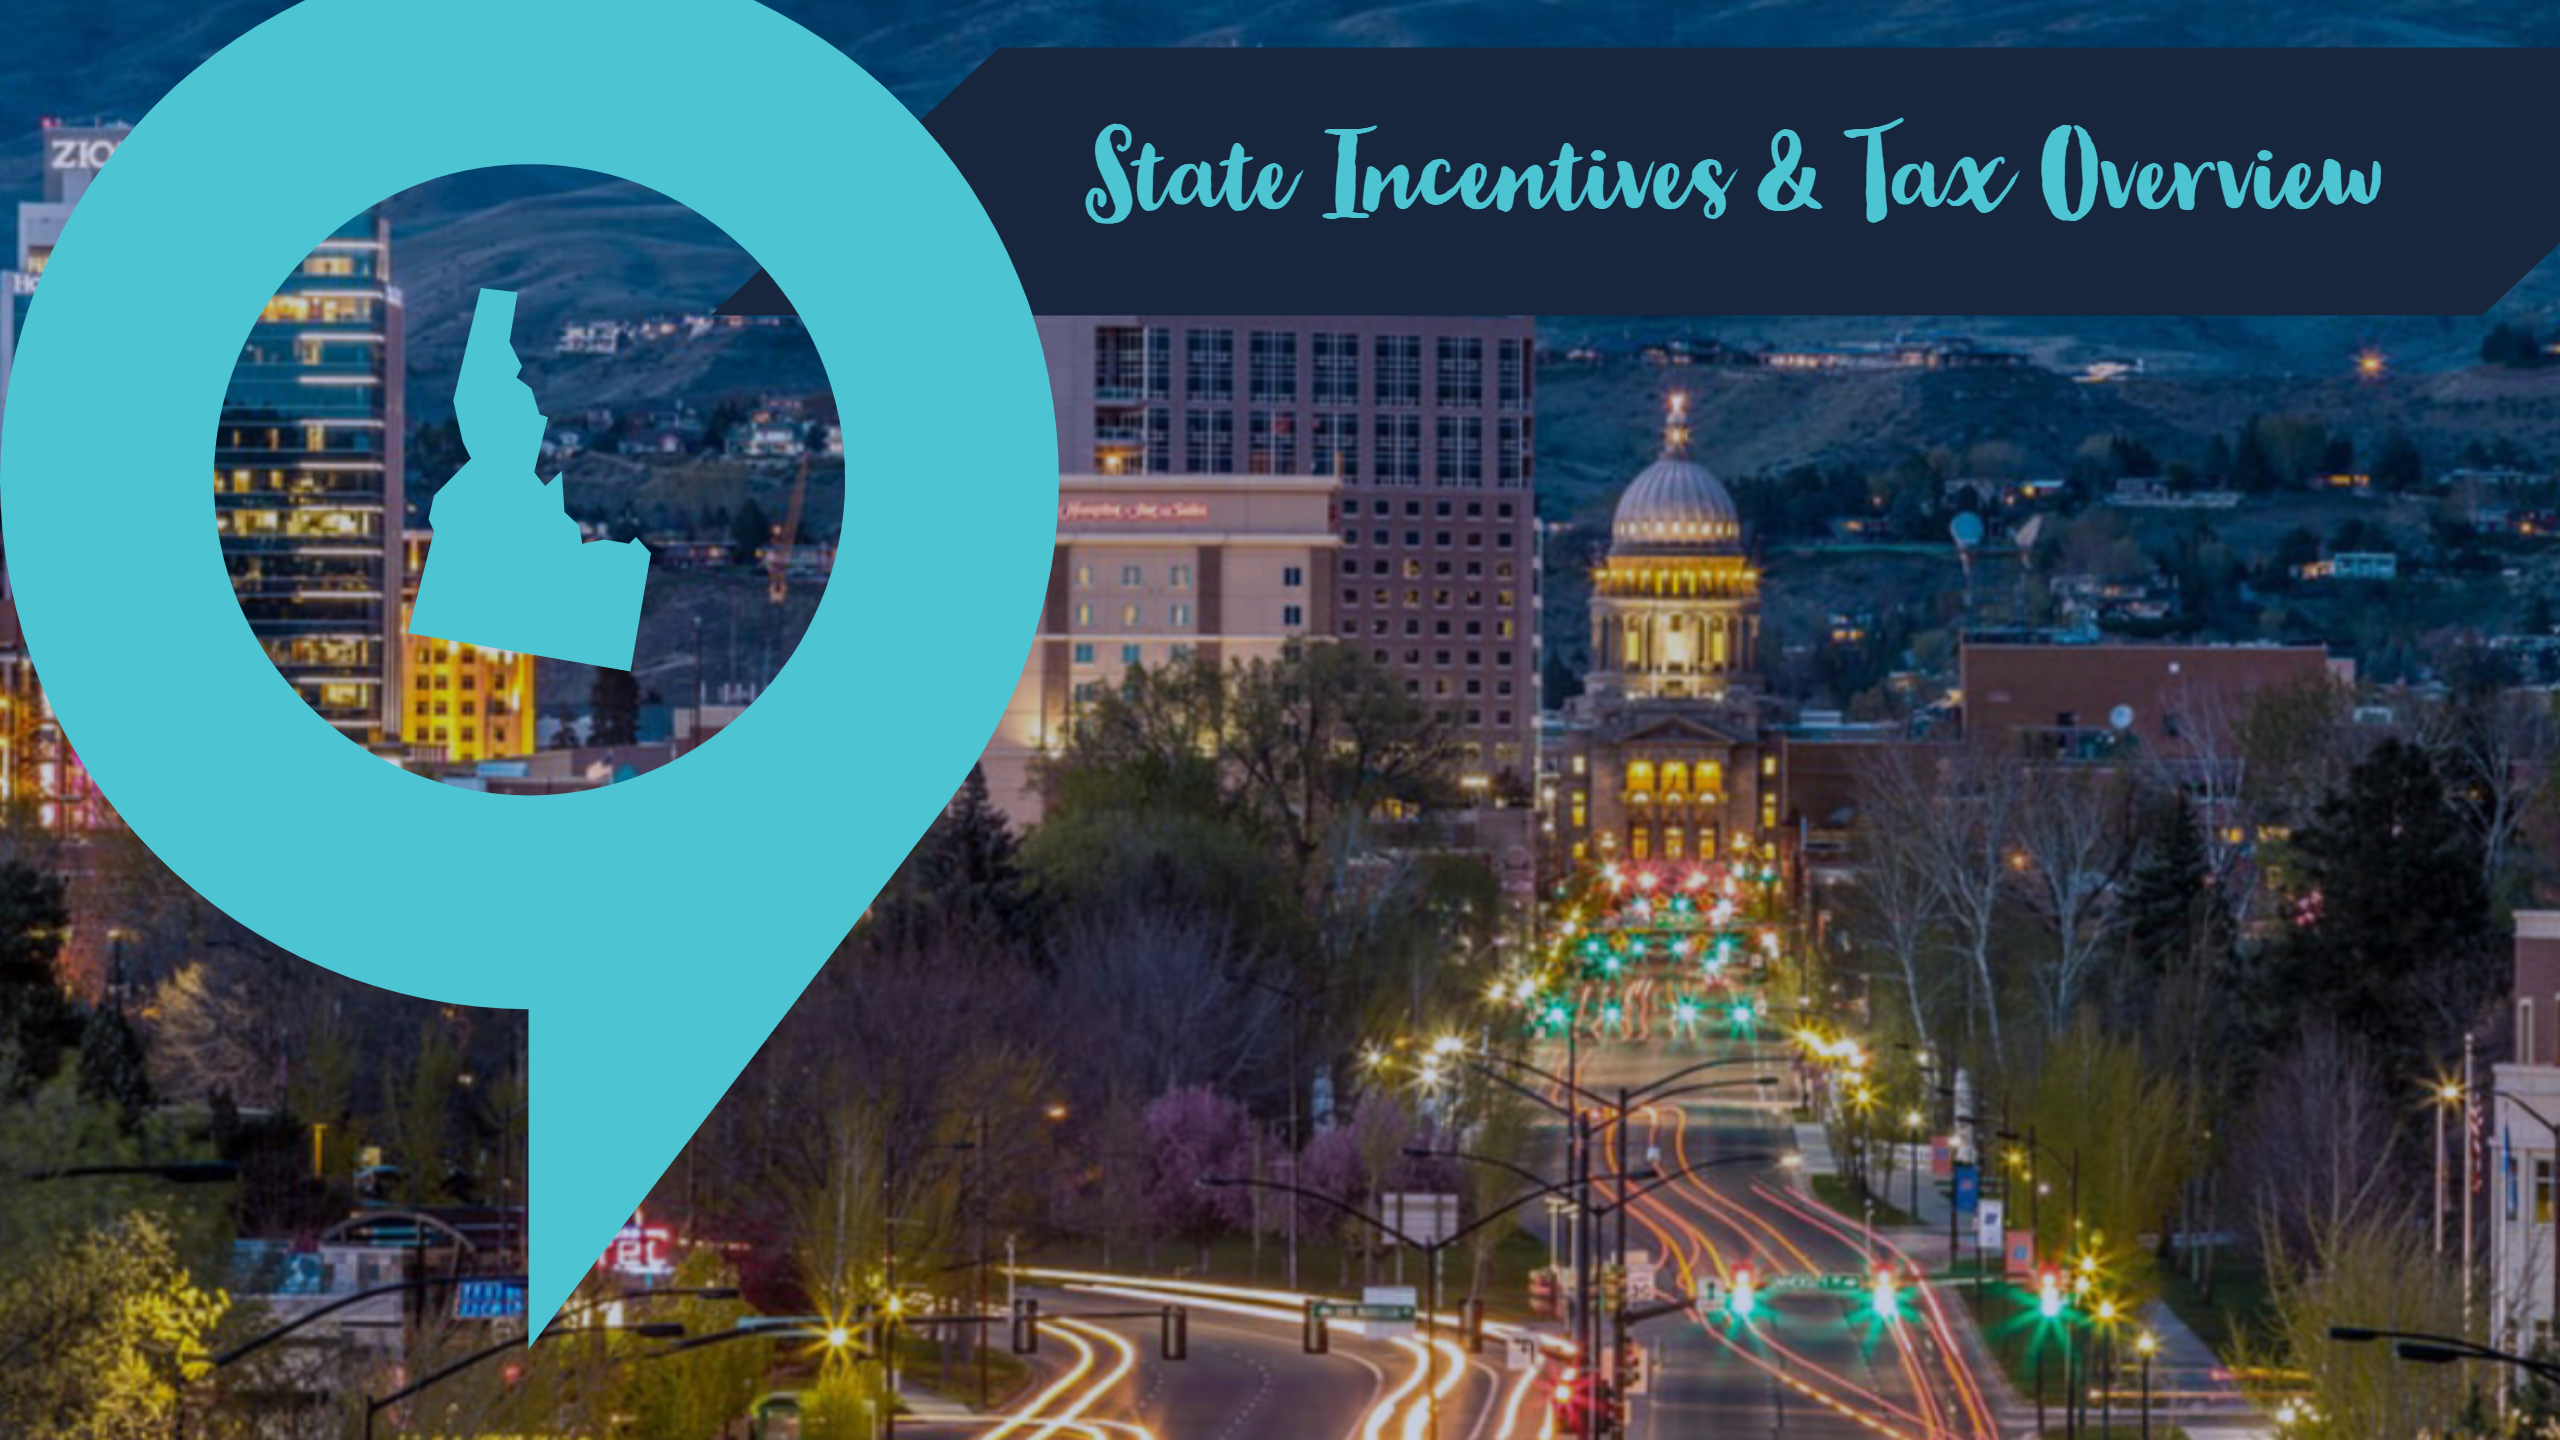 State Incentives